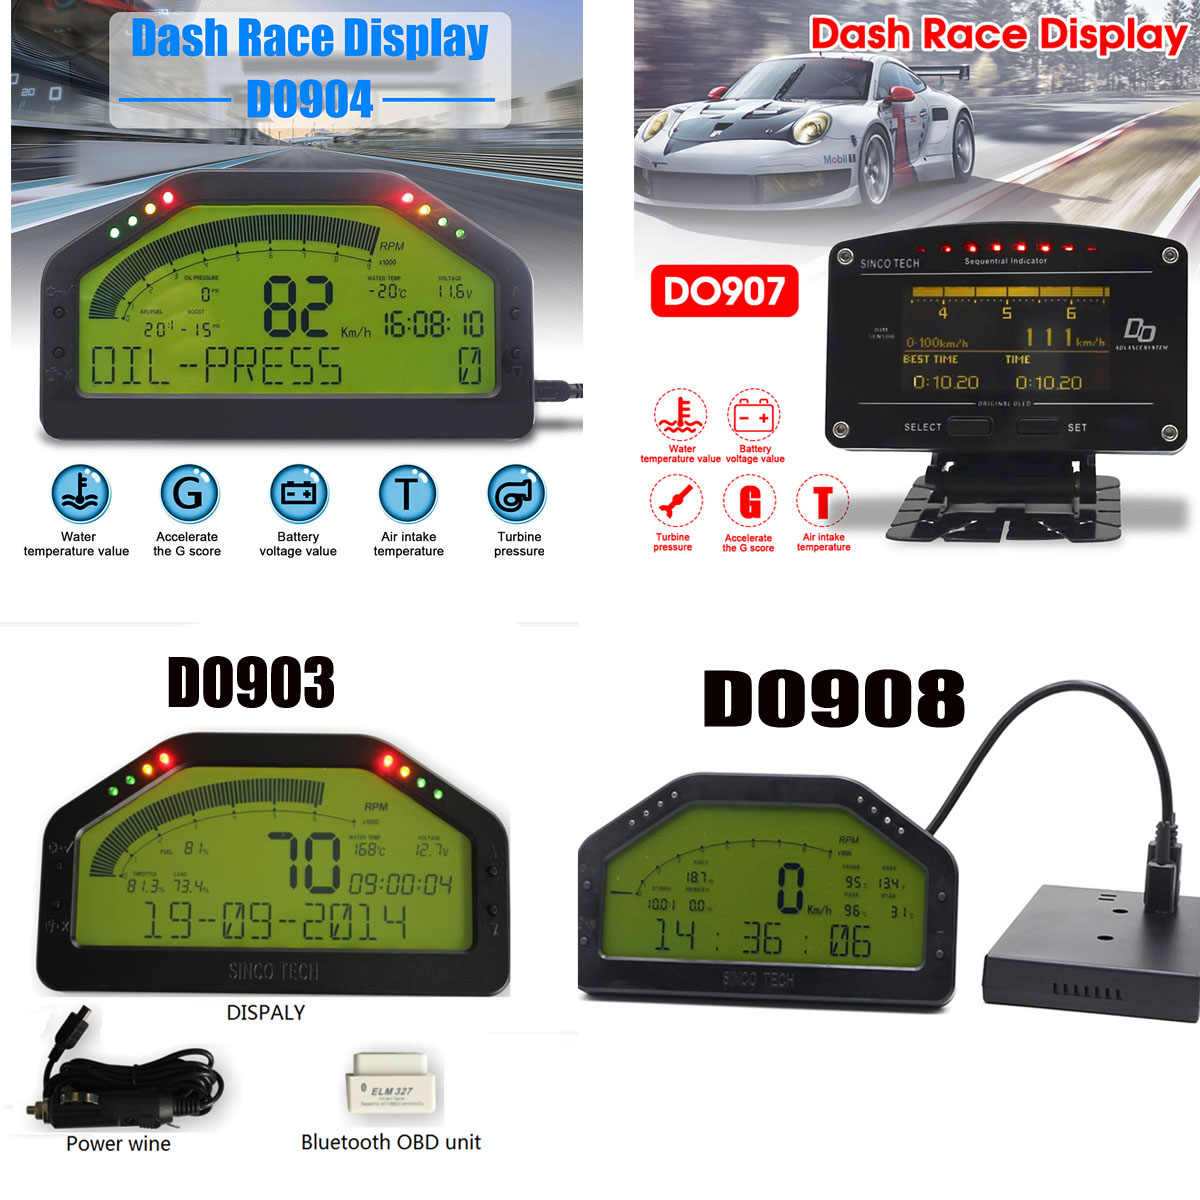 Waterproof Dash Race Display Full Sensor Kit LCD Screen OBD Bluetooh Connection Universal DashBoard DO903 DO904 DO907 DO908